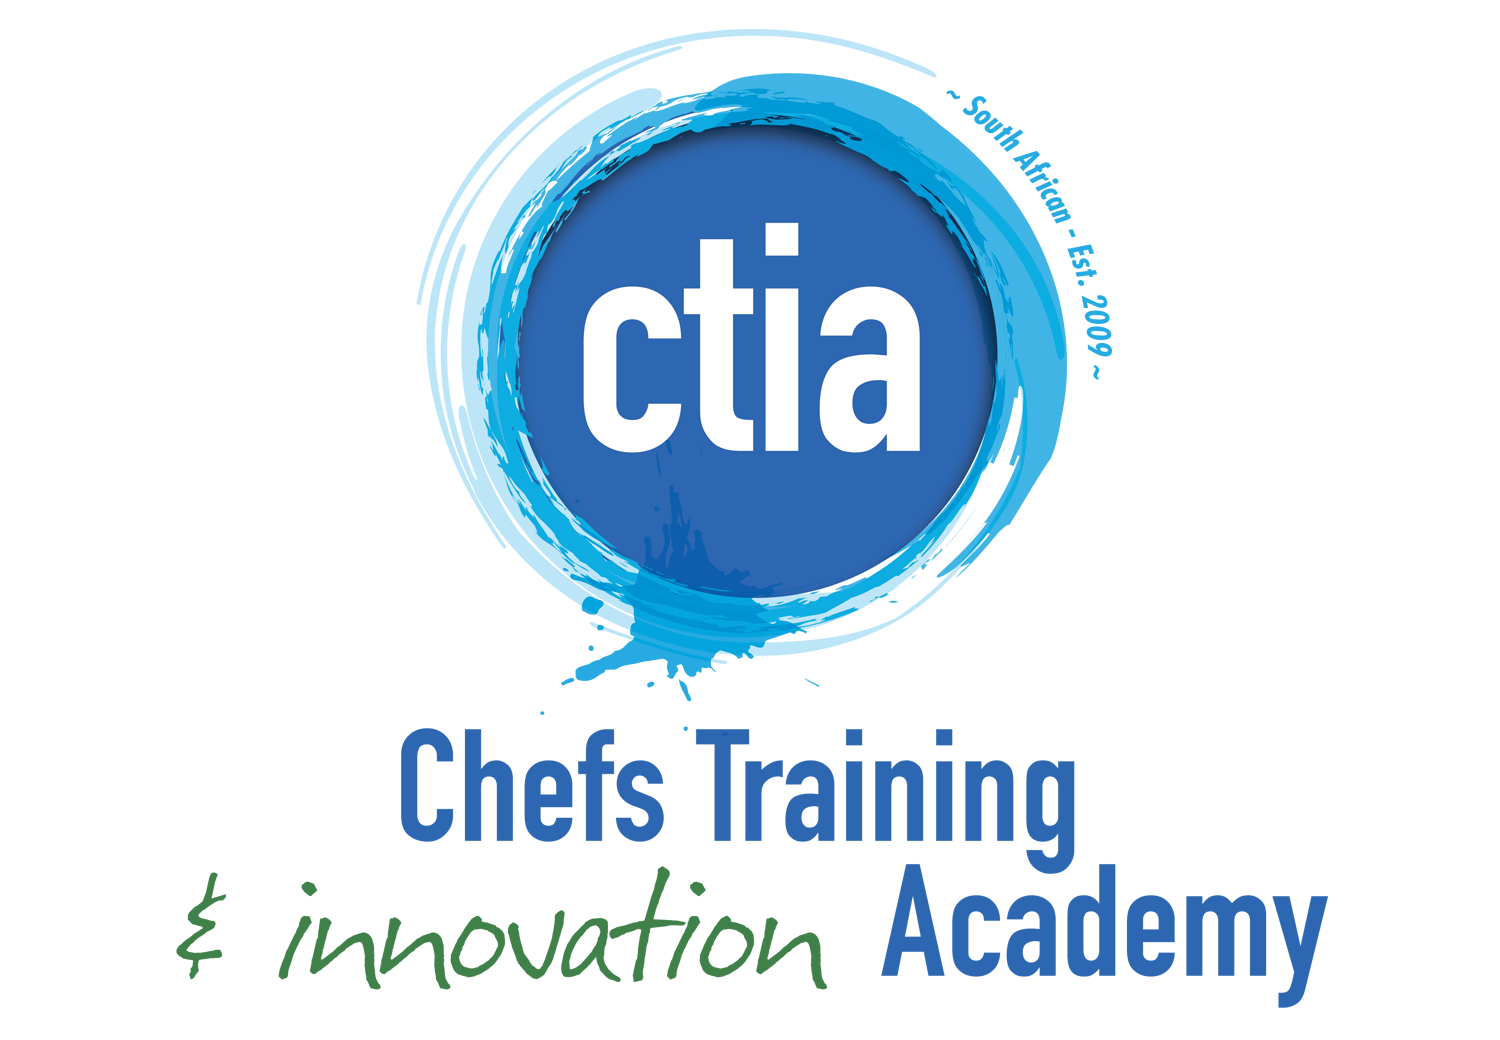 CTIA - Chefs Training and Innovation Academy